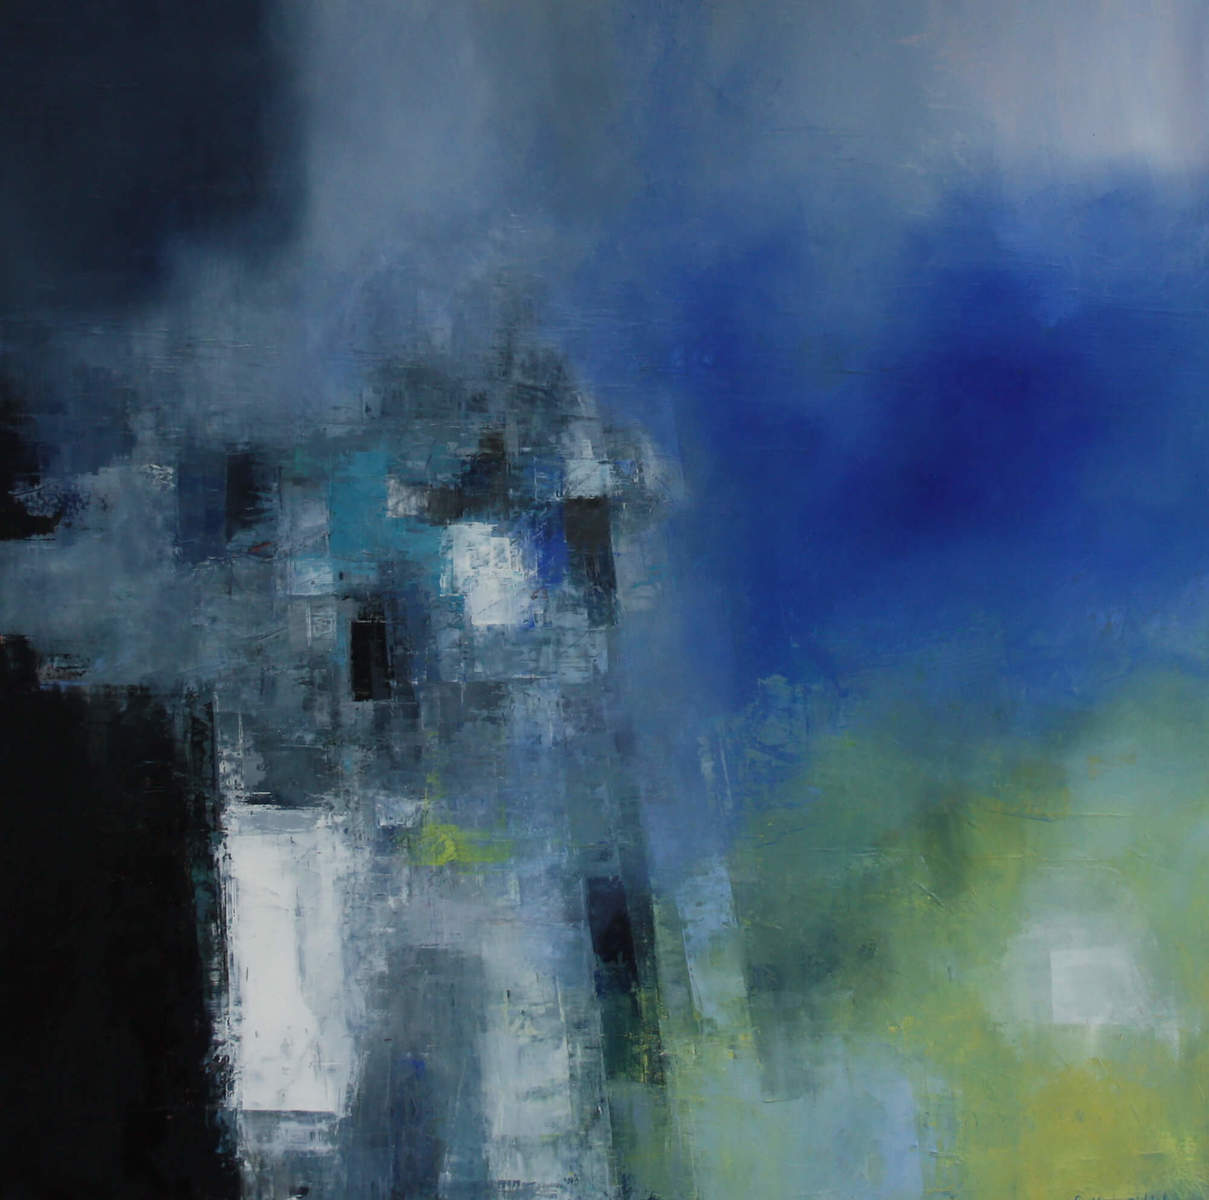 Shadow and Form, diptych (2); by Siobhan O'Hehir